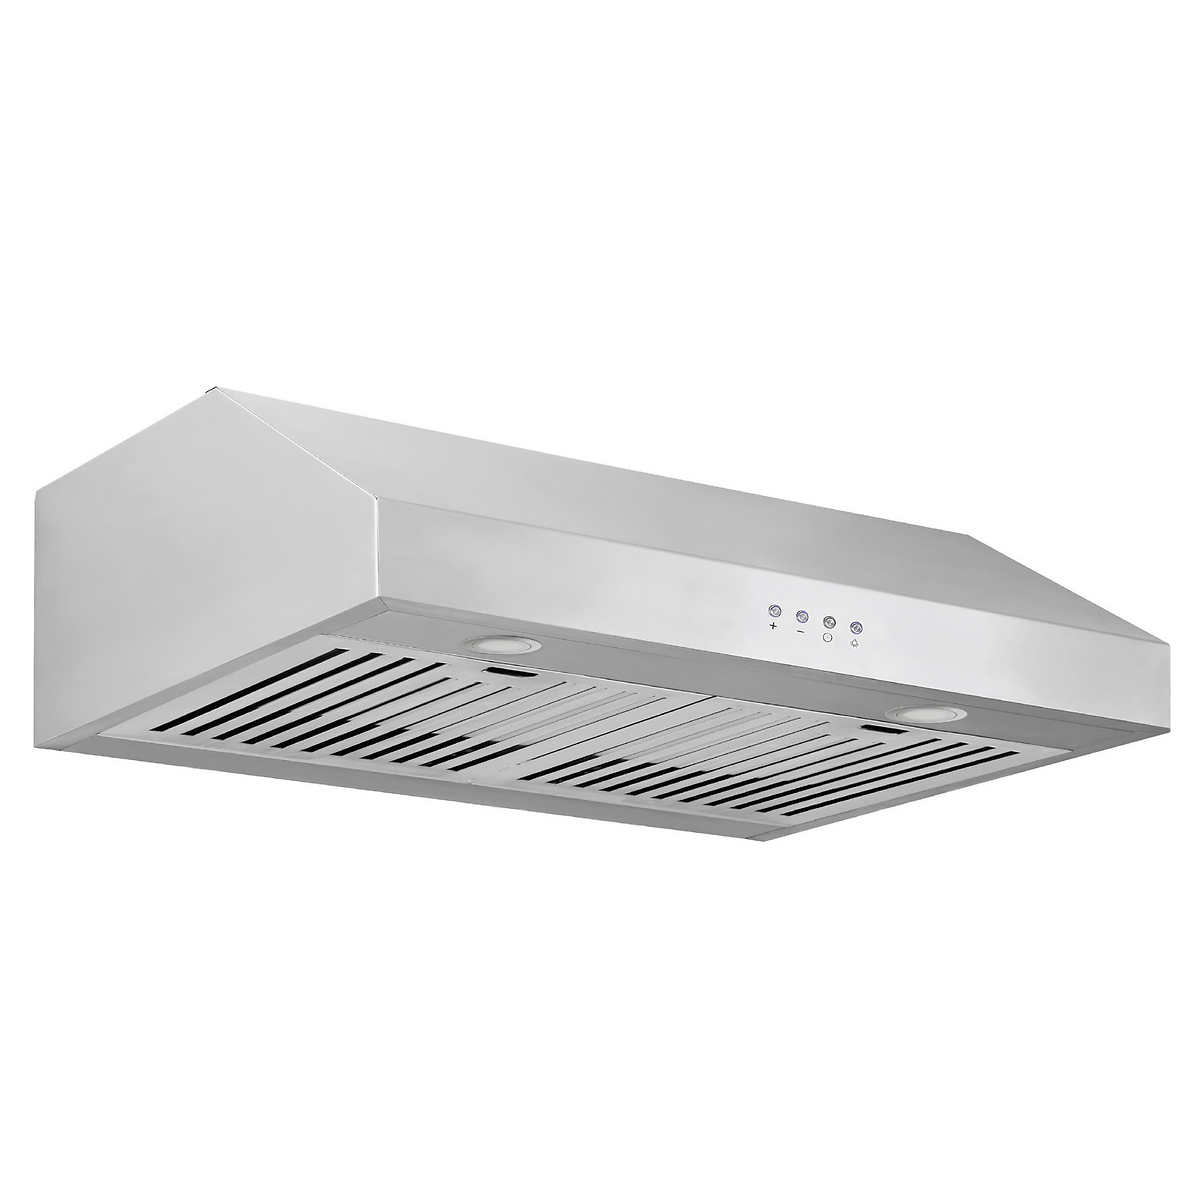 Ancona Advanta Pro Elite Under Cabinet Range Hood - 625 CFM